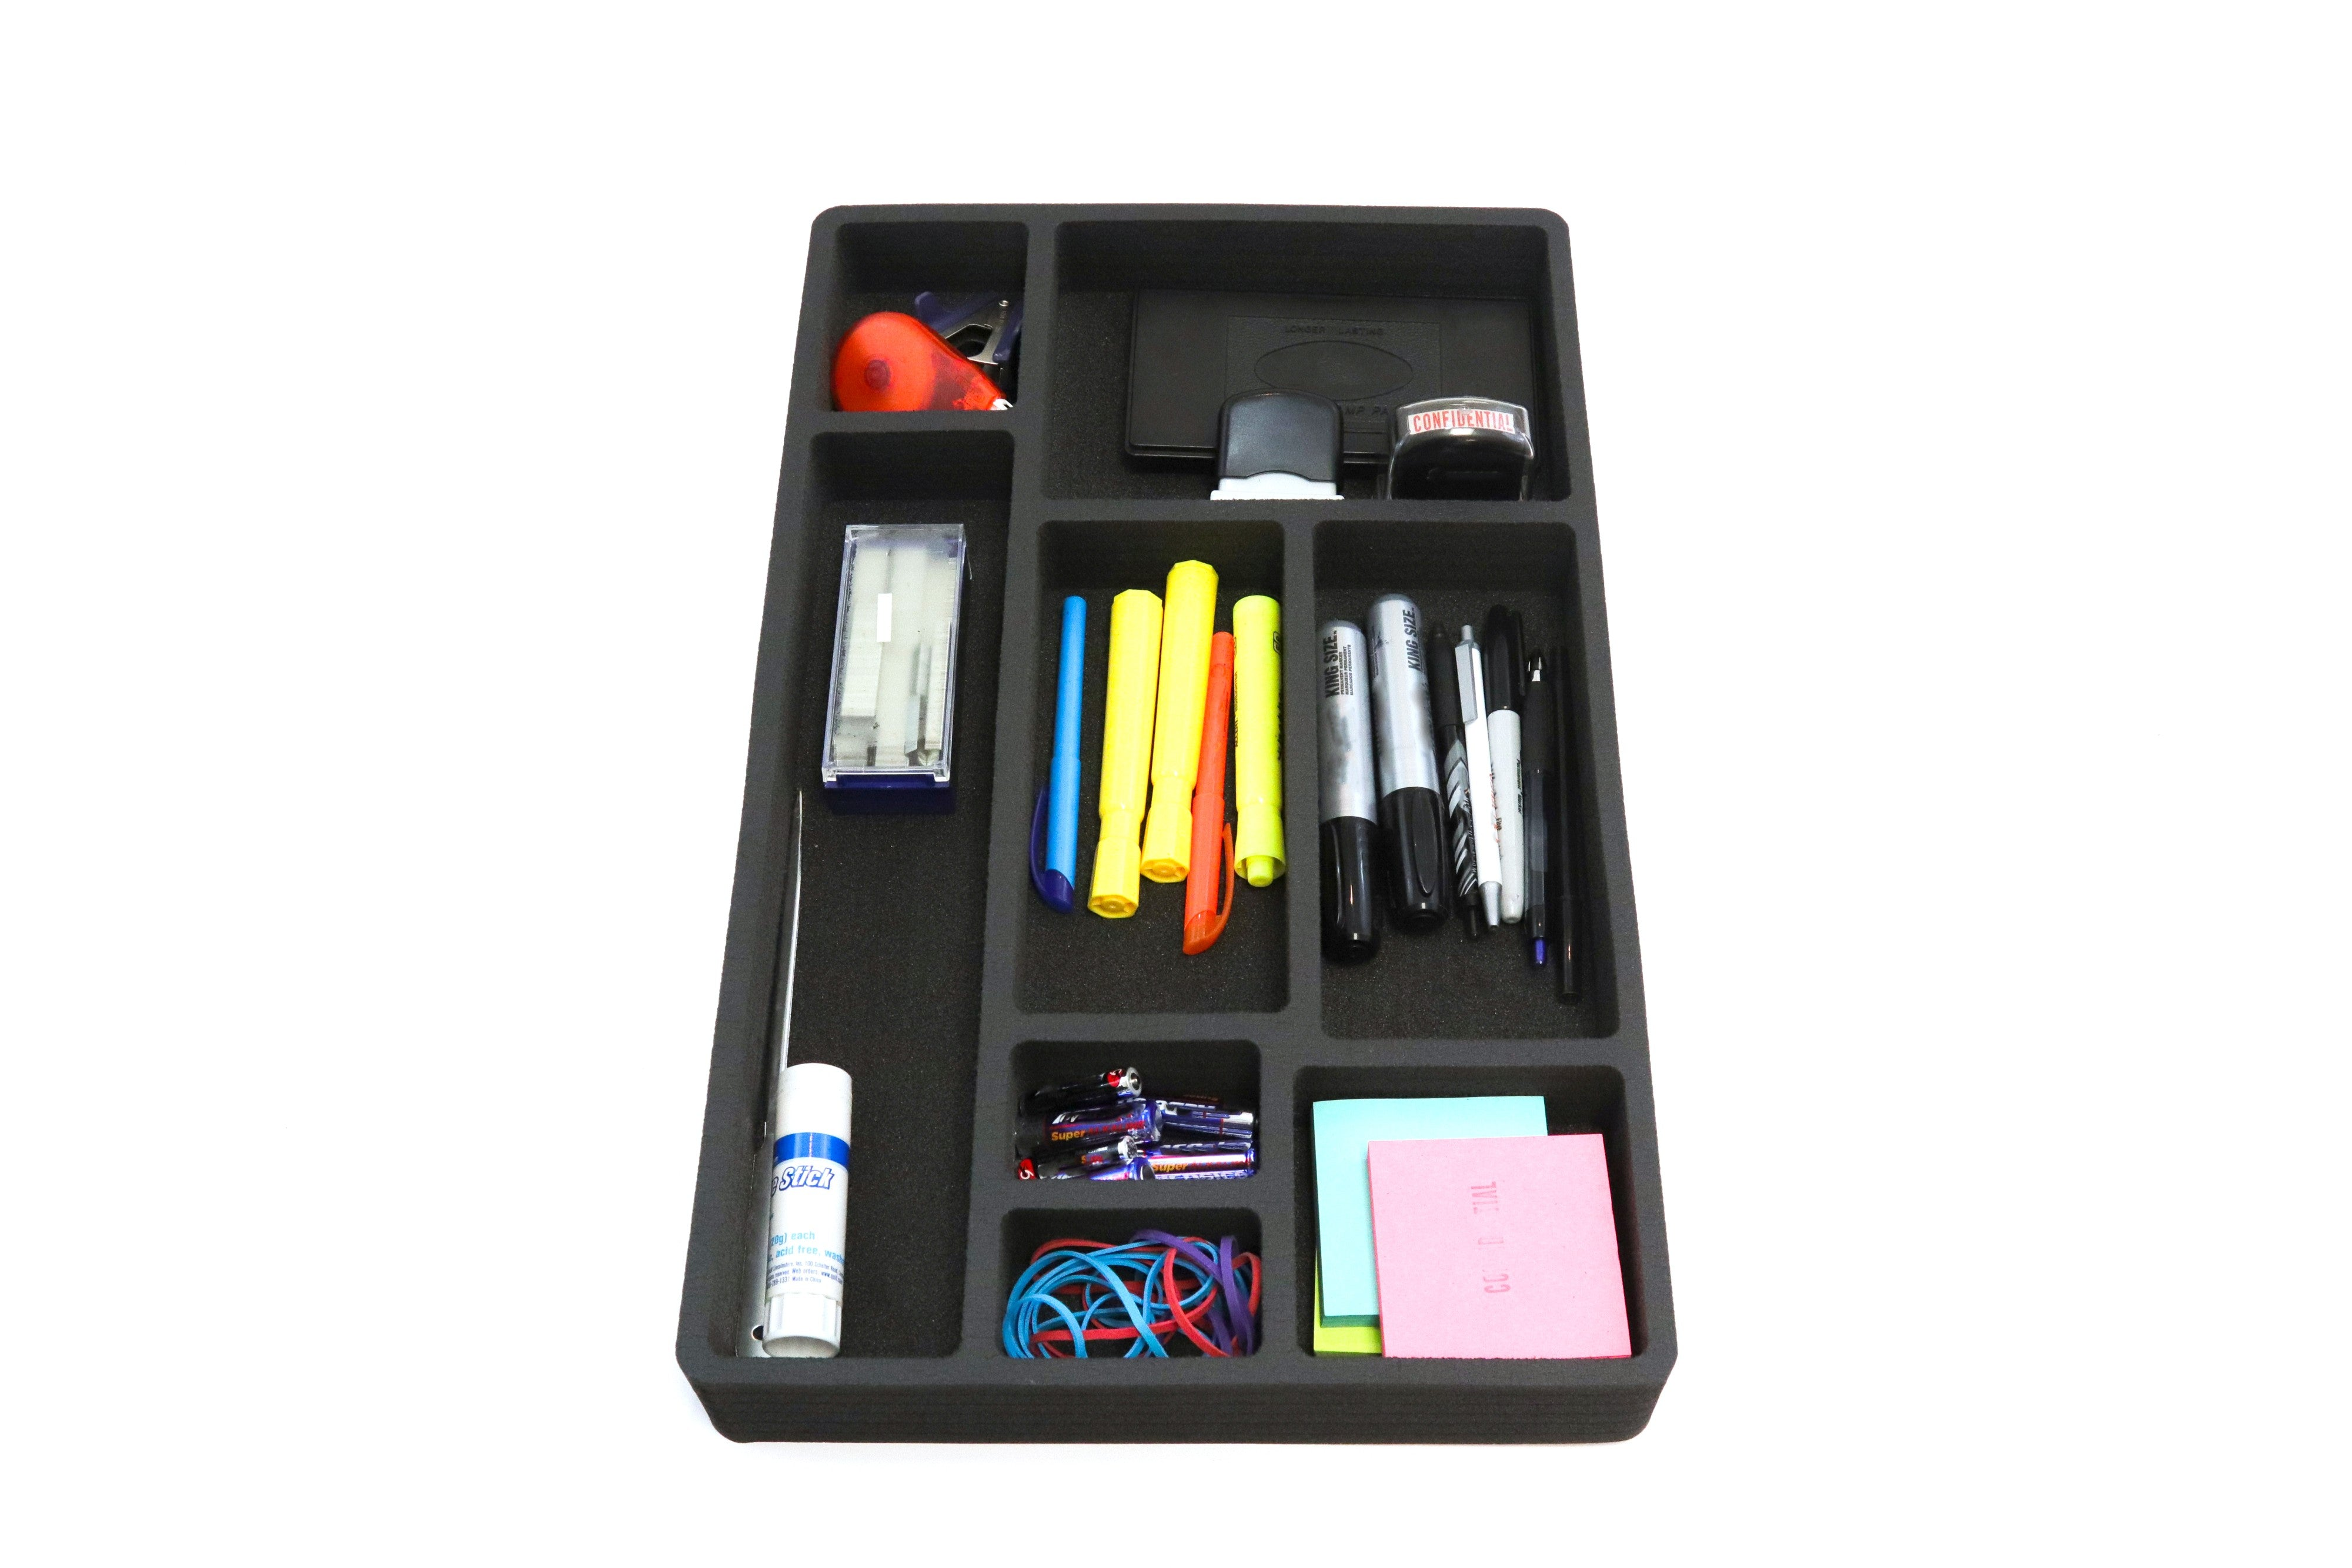 3 Piece Desk Drawer Organizers Tray Non-Slip Waterproof Insert 19.9 X 12.1 X 2 Inches Black 8 Compartments Extra Deep Set of 3